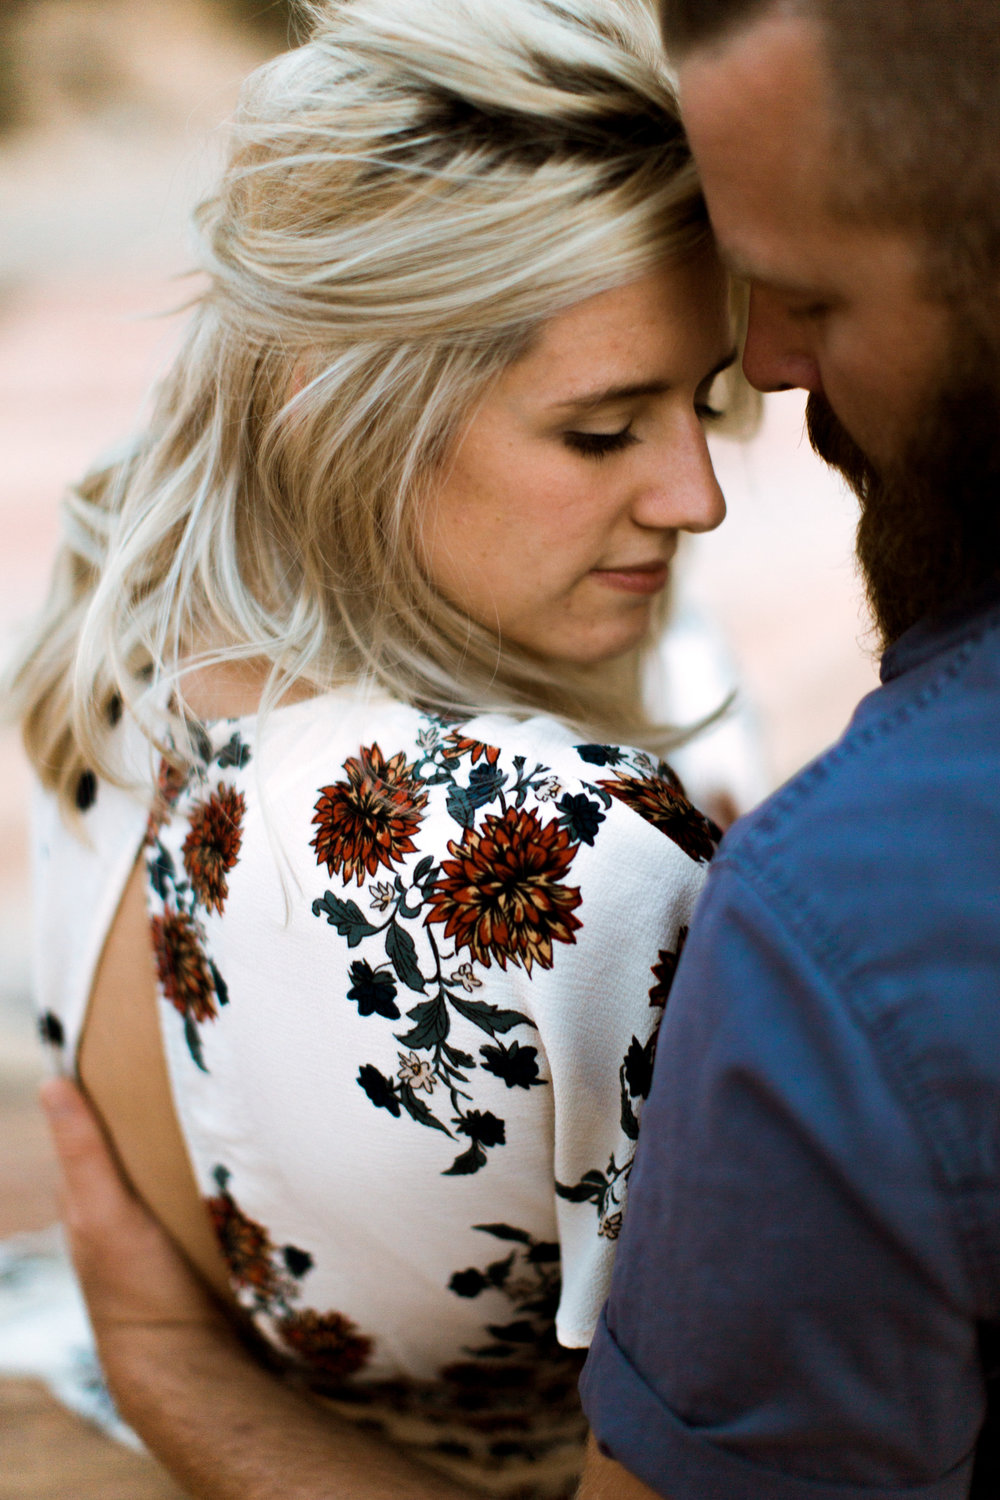 Zion National Park anniversary portrait session // adventure wedding photographer // www.abbihearne.com